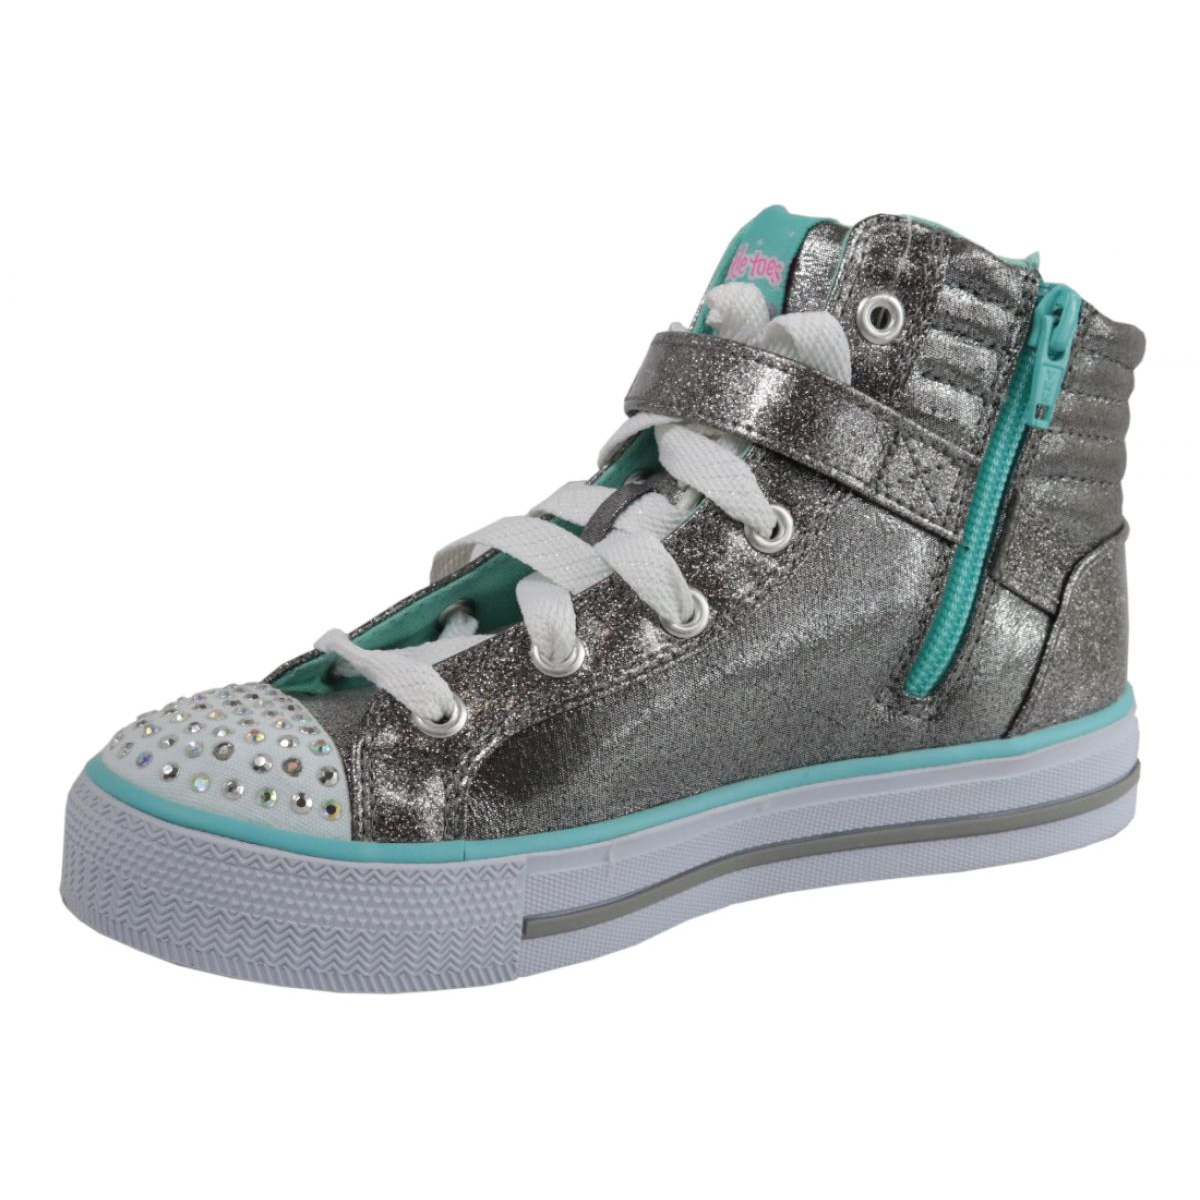 Policía suficiente Chorrito  Skechers Shuffles Jr 10712L-GUTQ shoes grey - ButyModne.pl